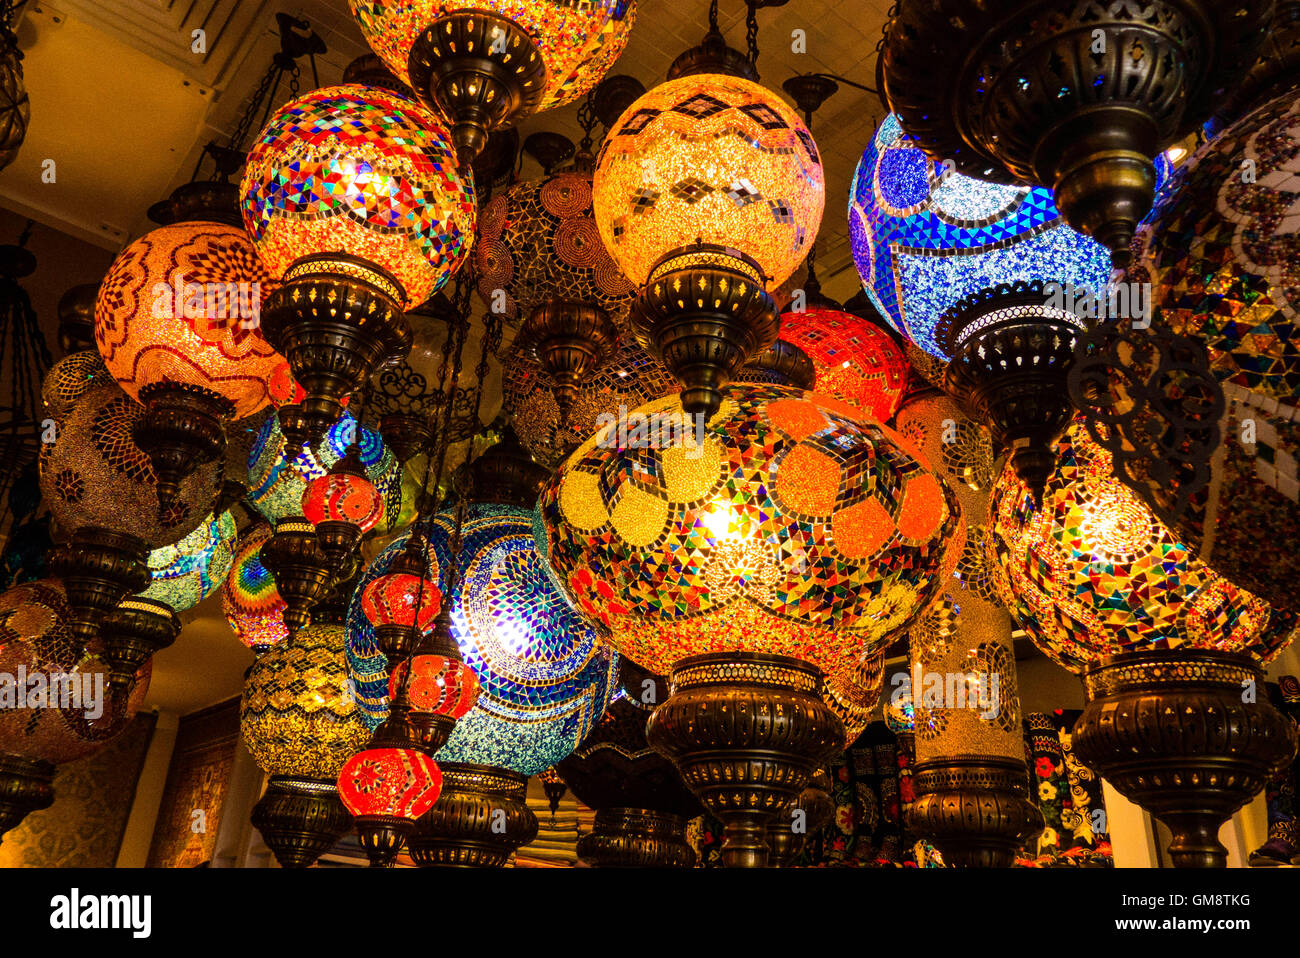 oriental light fixtures in shopdazzling colors stock image oriental lighting n43 oriental